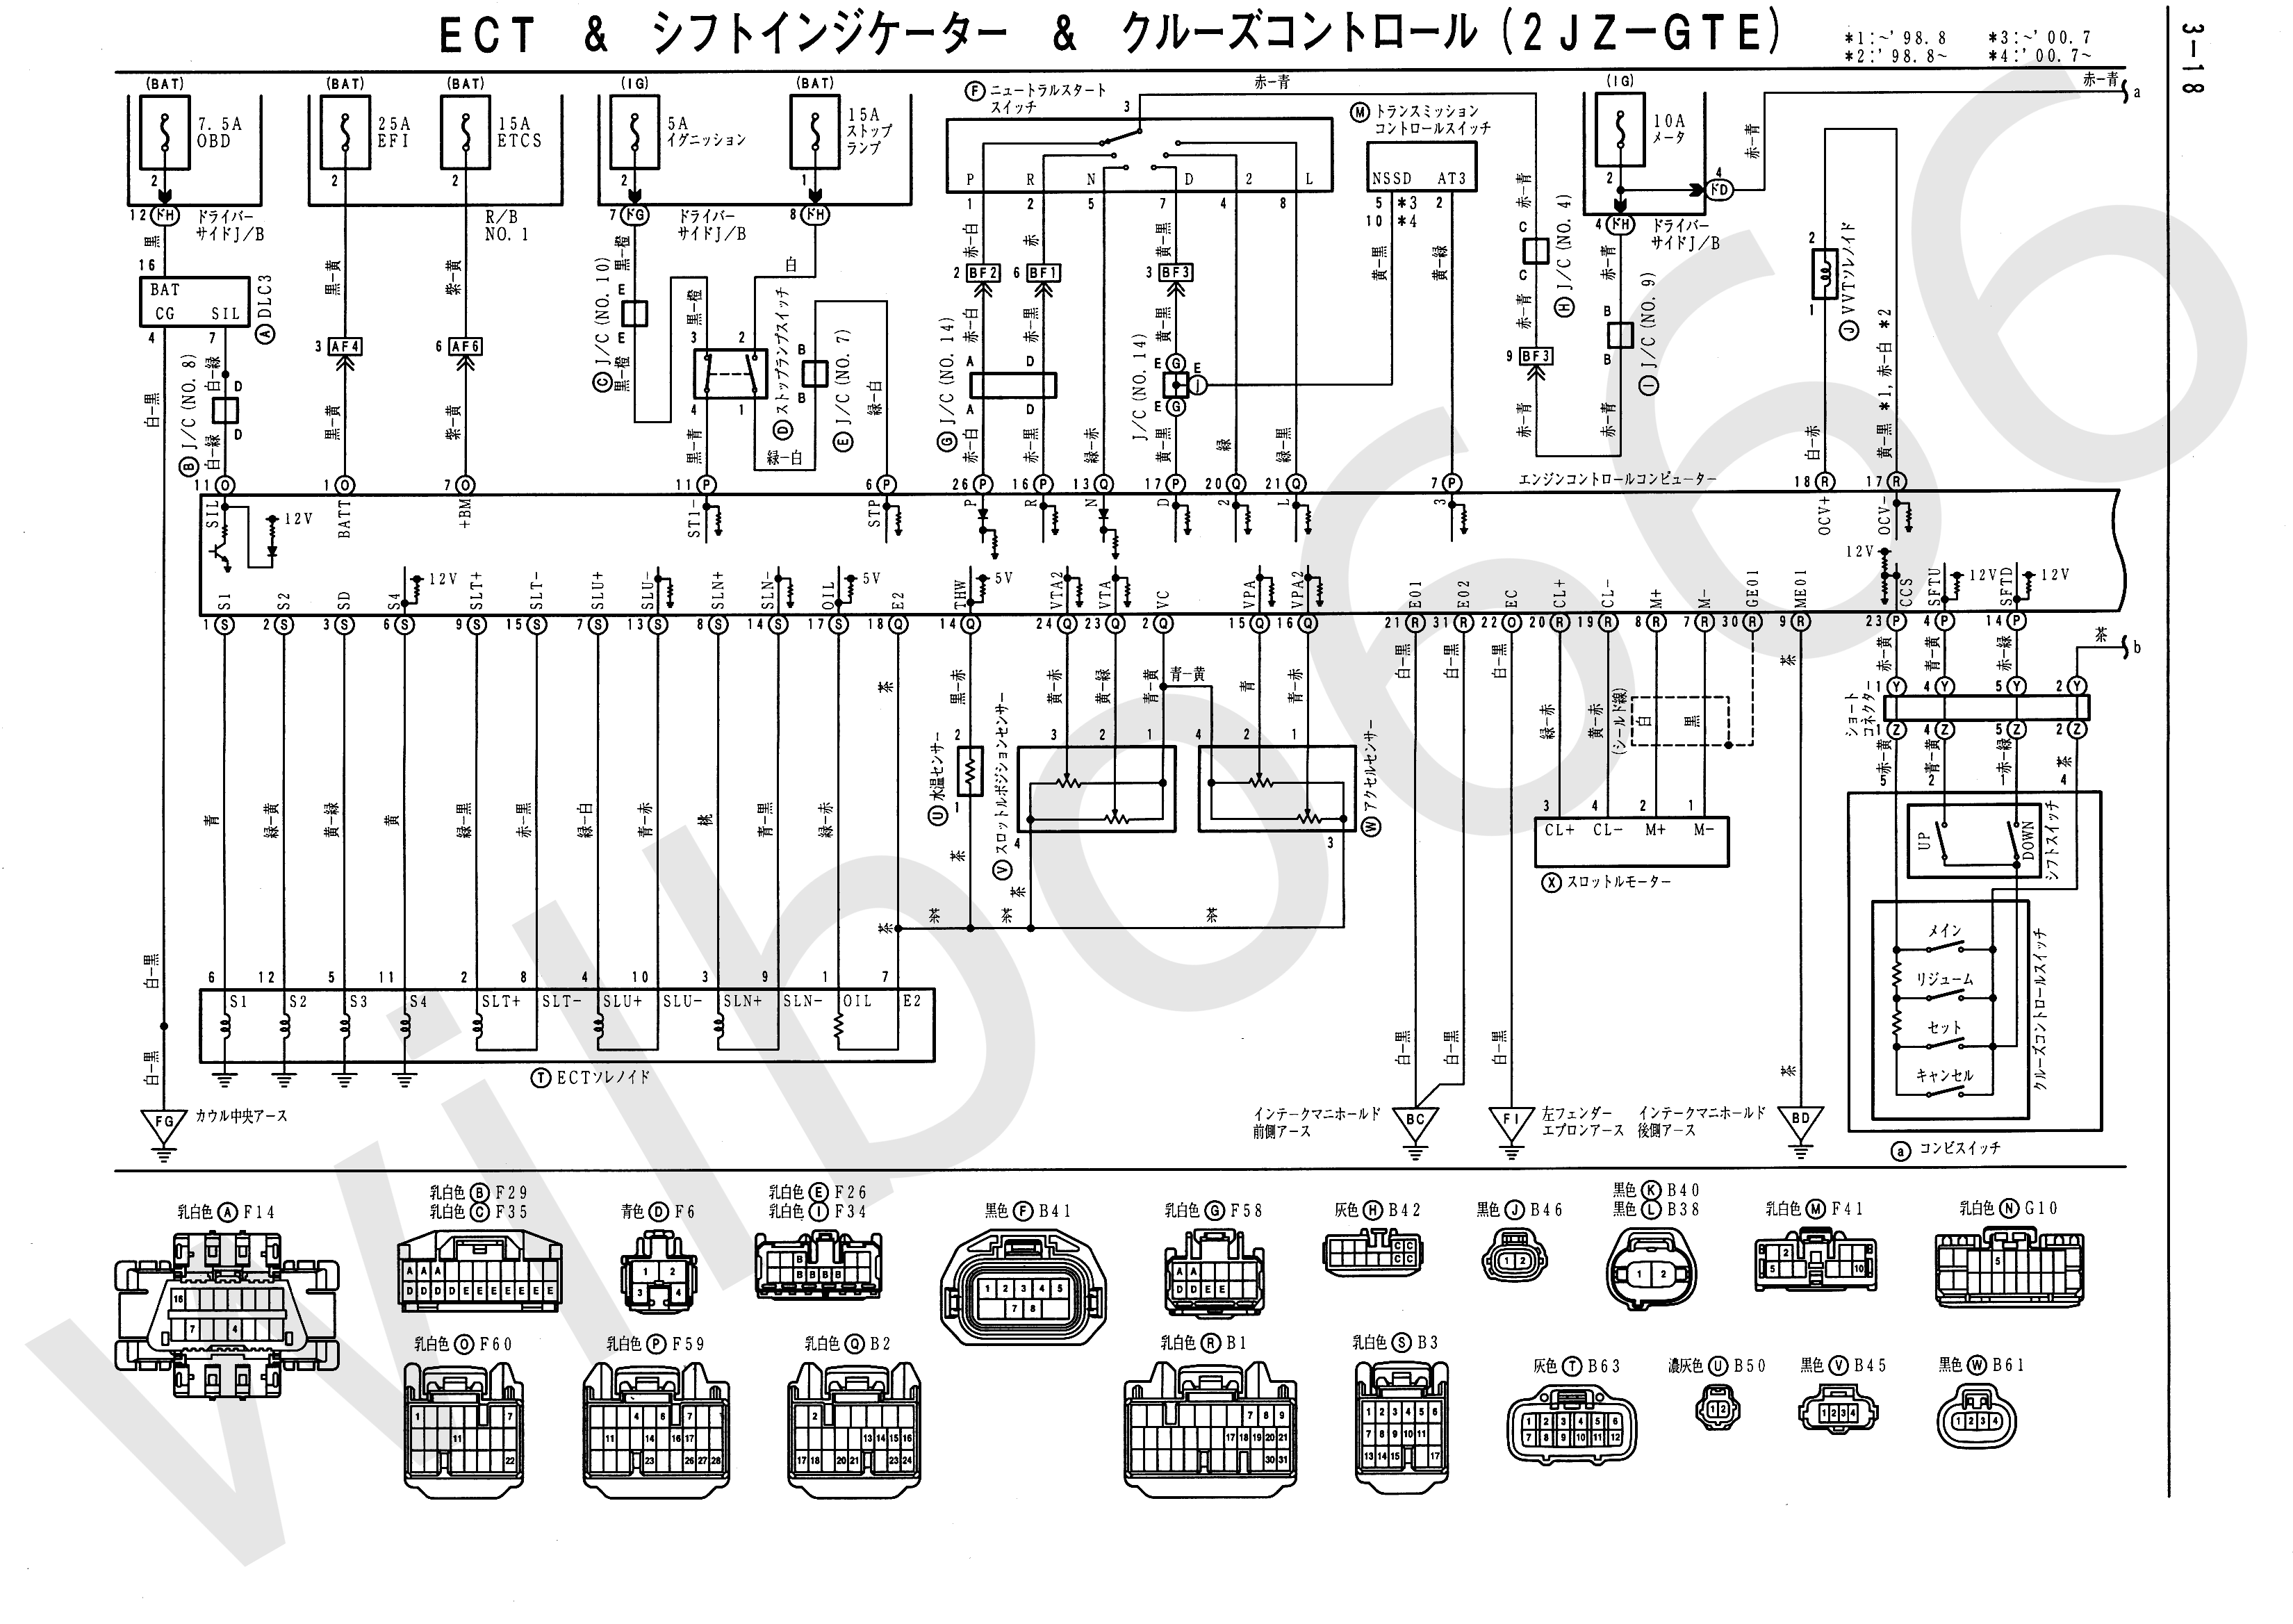 JZS161 Electrical Wiring Diagram 6748505 3 18 wilbo666 2jz gte vvti jzs161 aristo engine wiring  at readyjetset.co